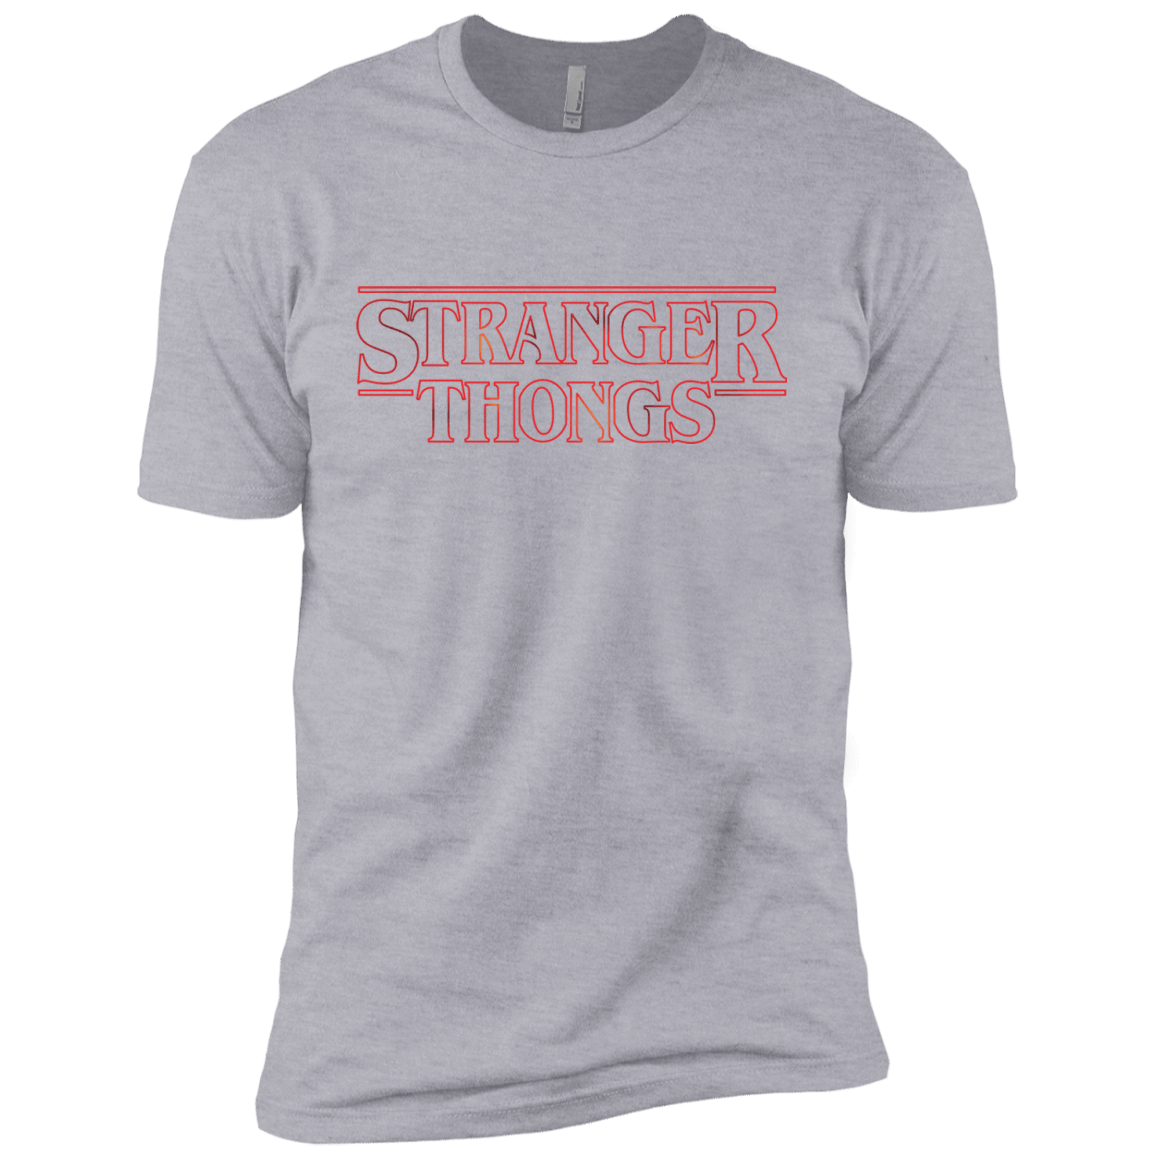 Stranger Thongs Boys Premium T-Shirt